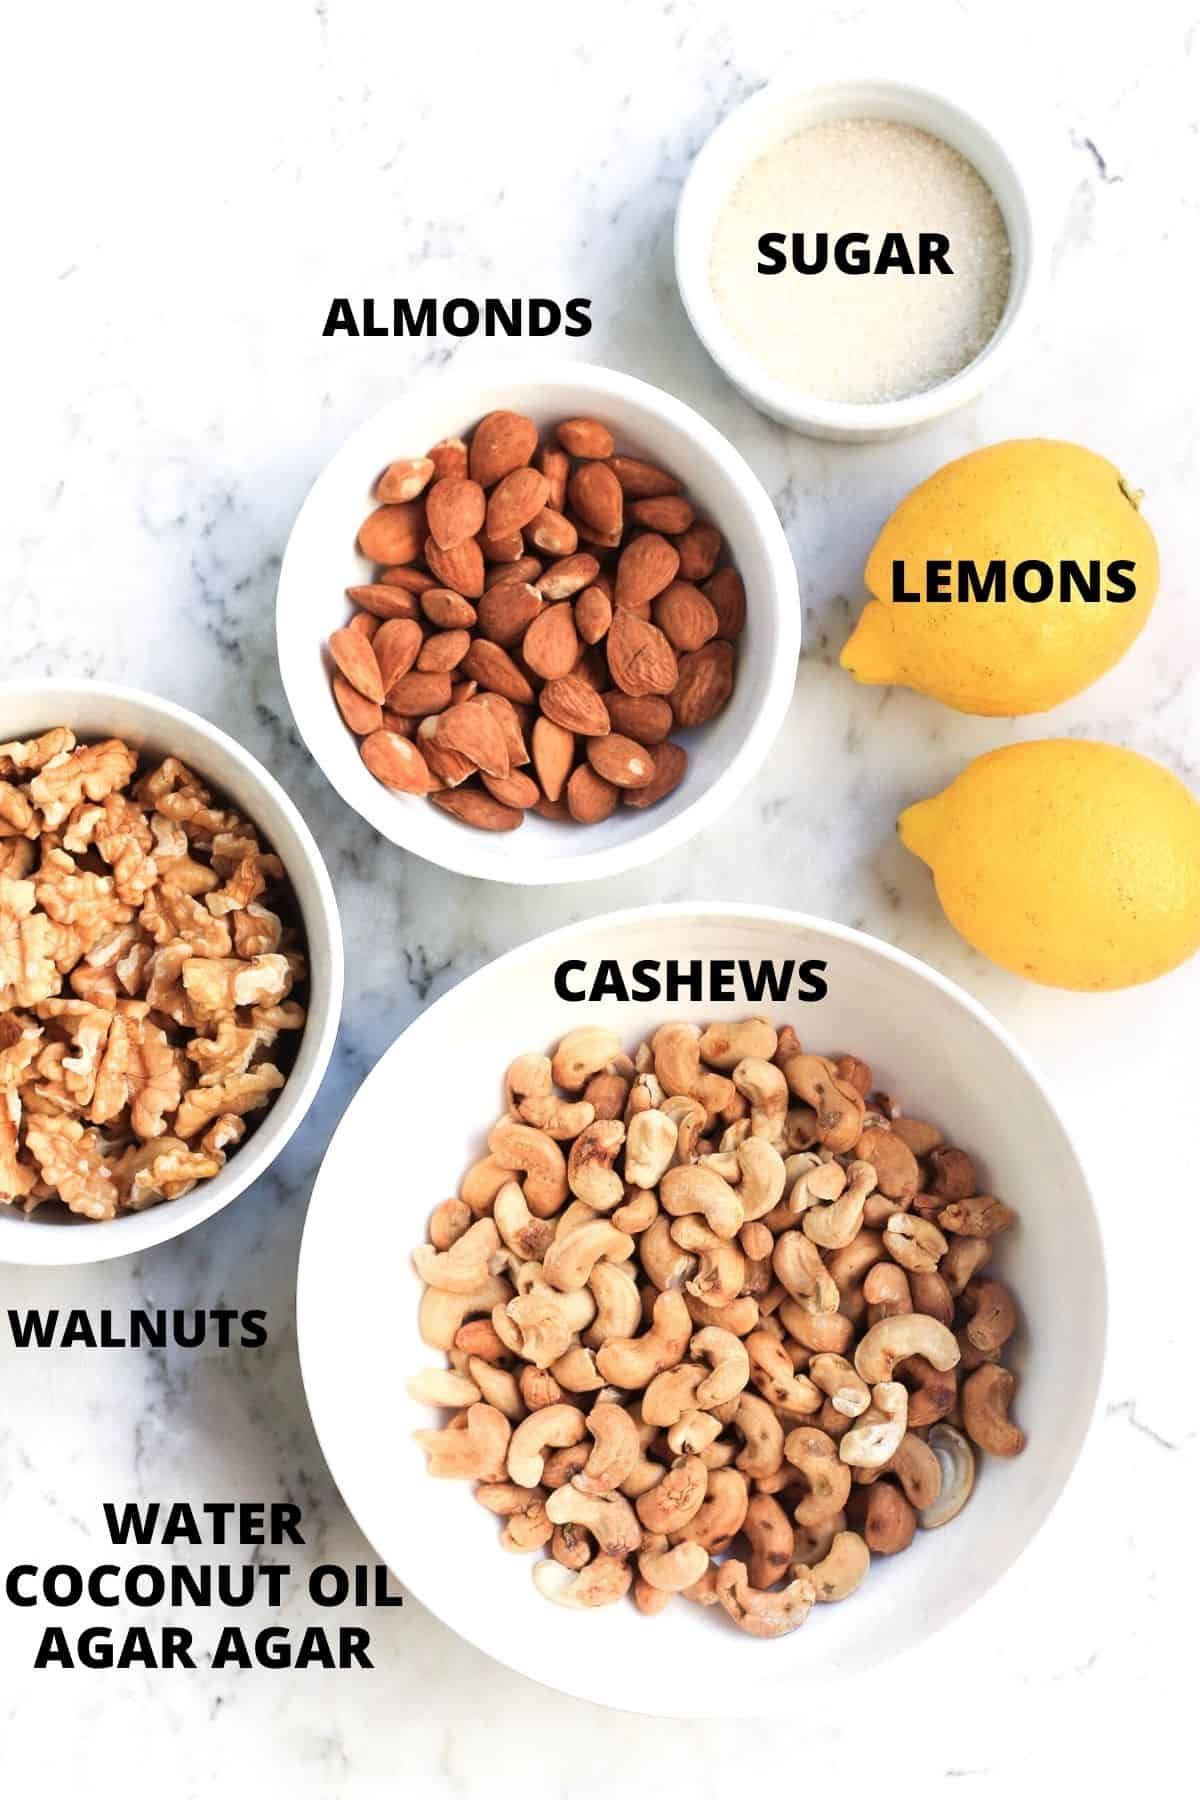 Ingredients required for making no-bake lemon cheesecake.